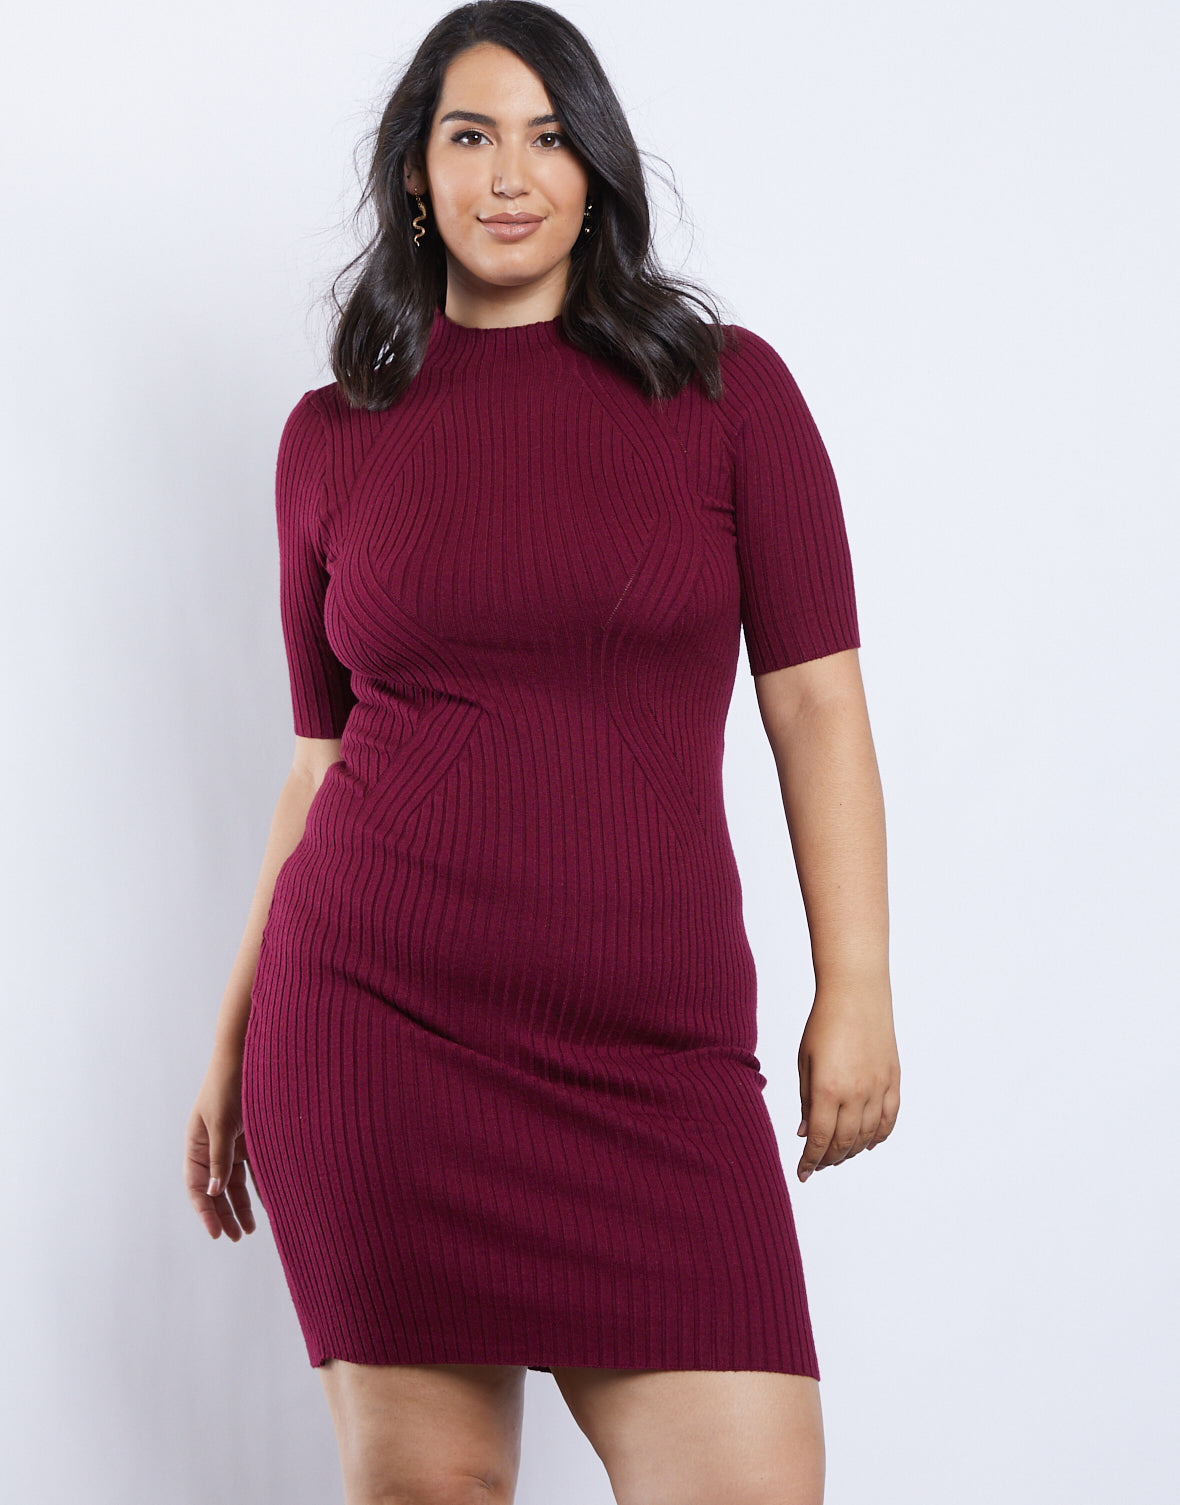 Plus Size Phoebe Sweater Dress